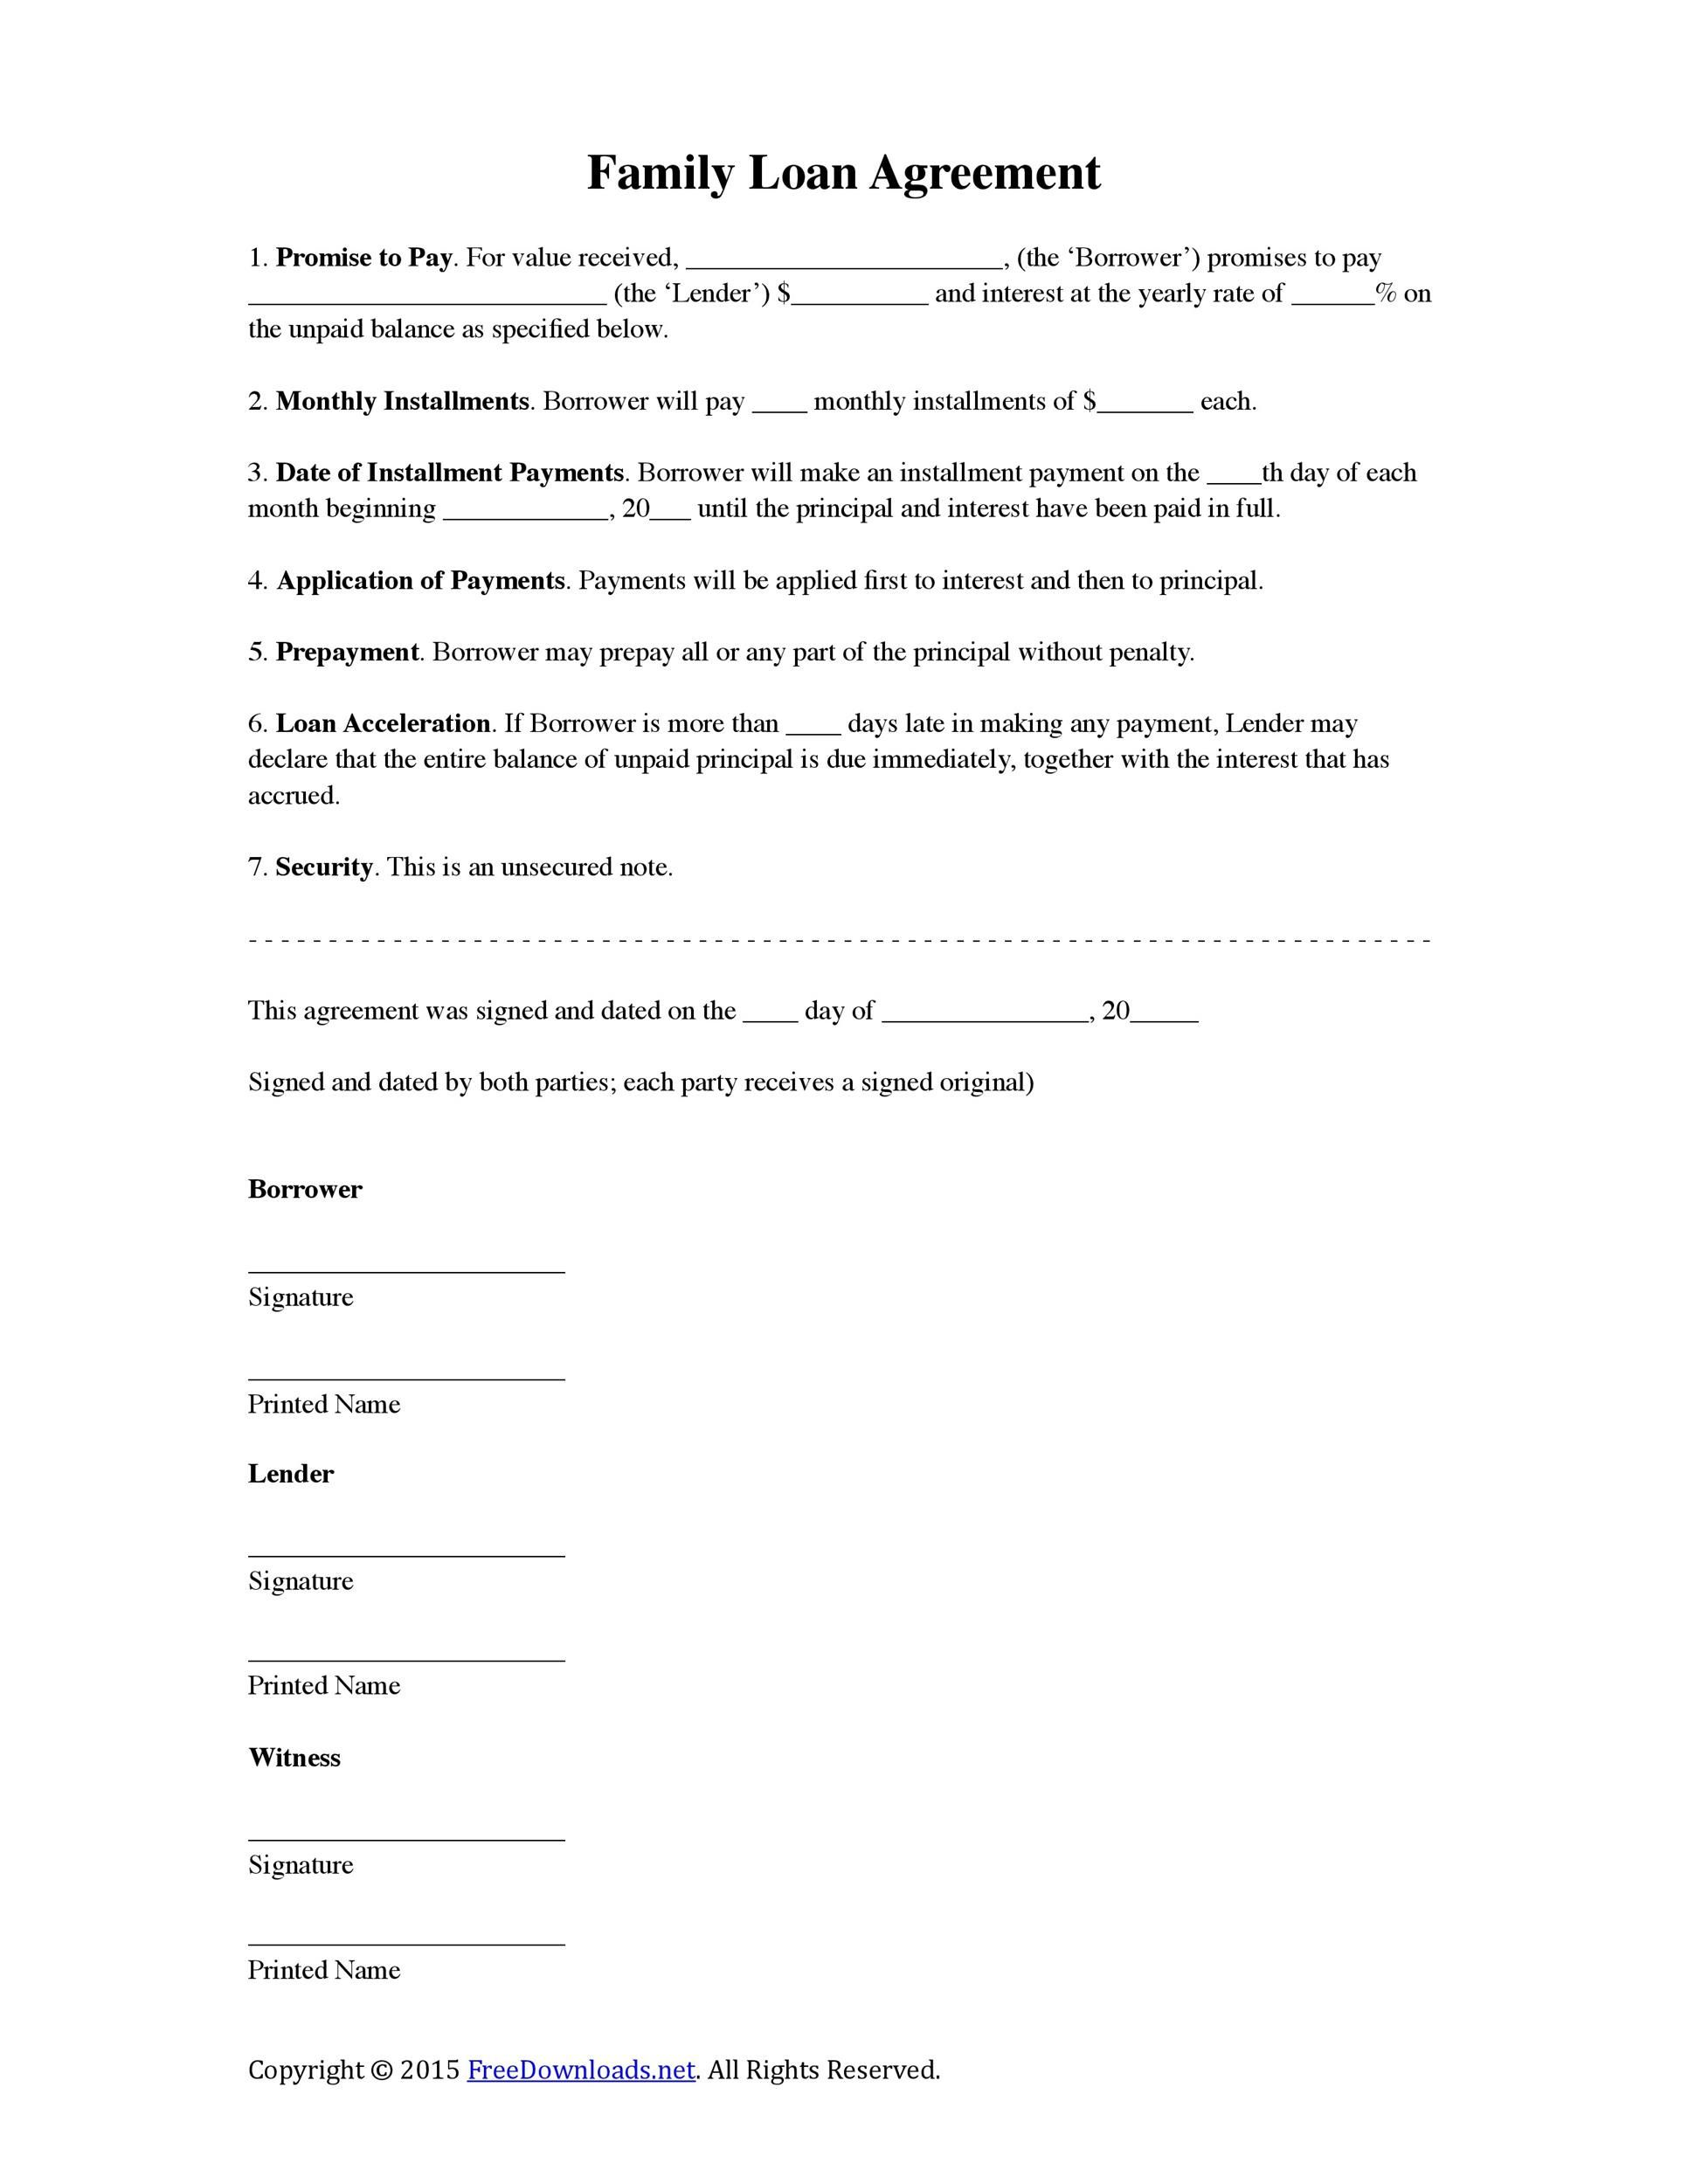 009 Remarkable Family Loan Agreement Template Free Uk Inspiration  SimpleFull